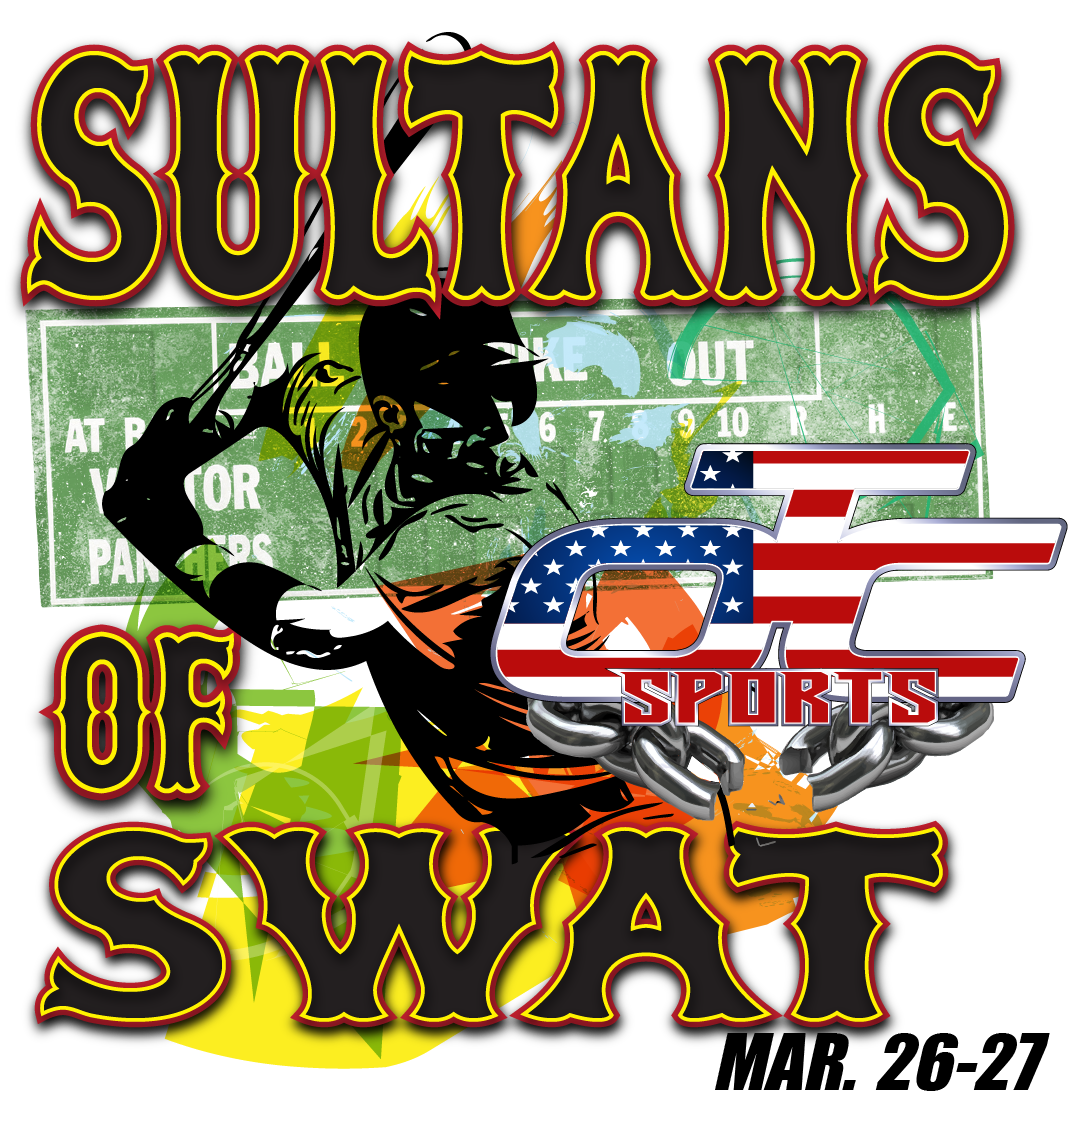 The Sultans Of Swat! Logo